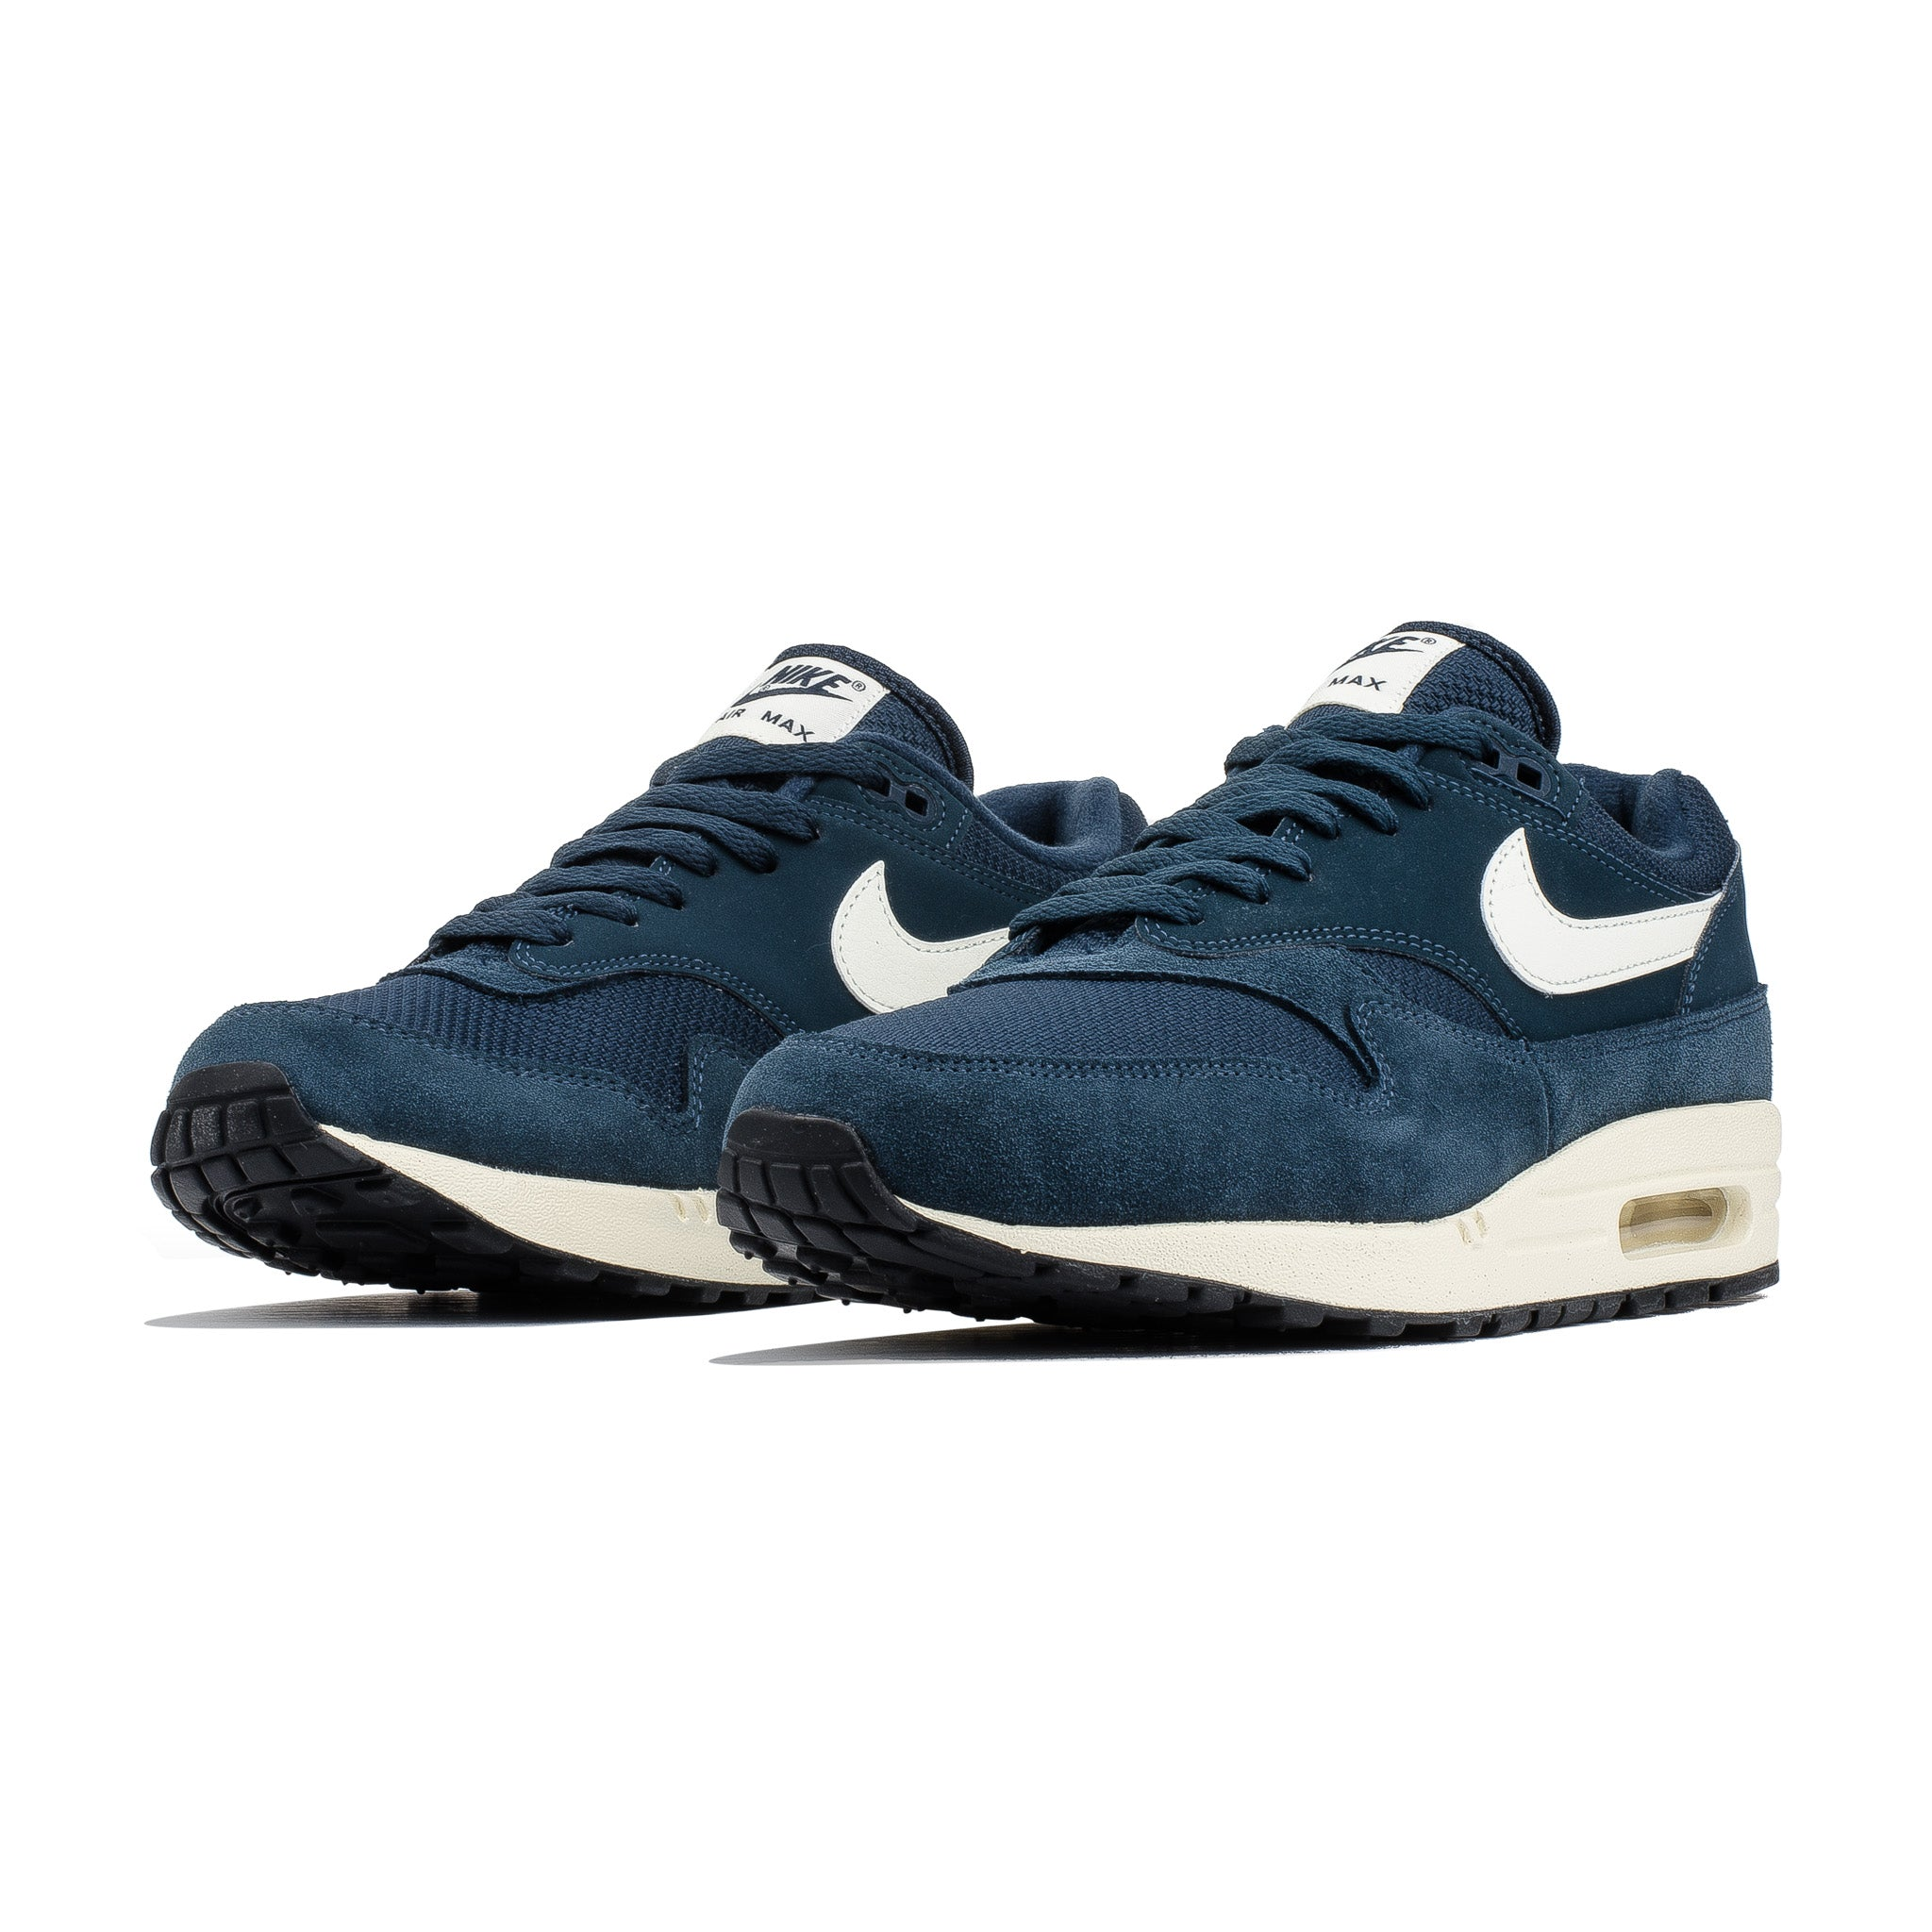 new photos e9f74 348b2 Air Max 1 AH8145-401 Armory Navy